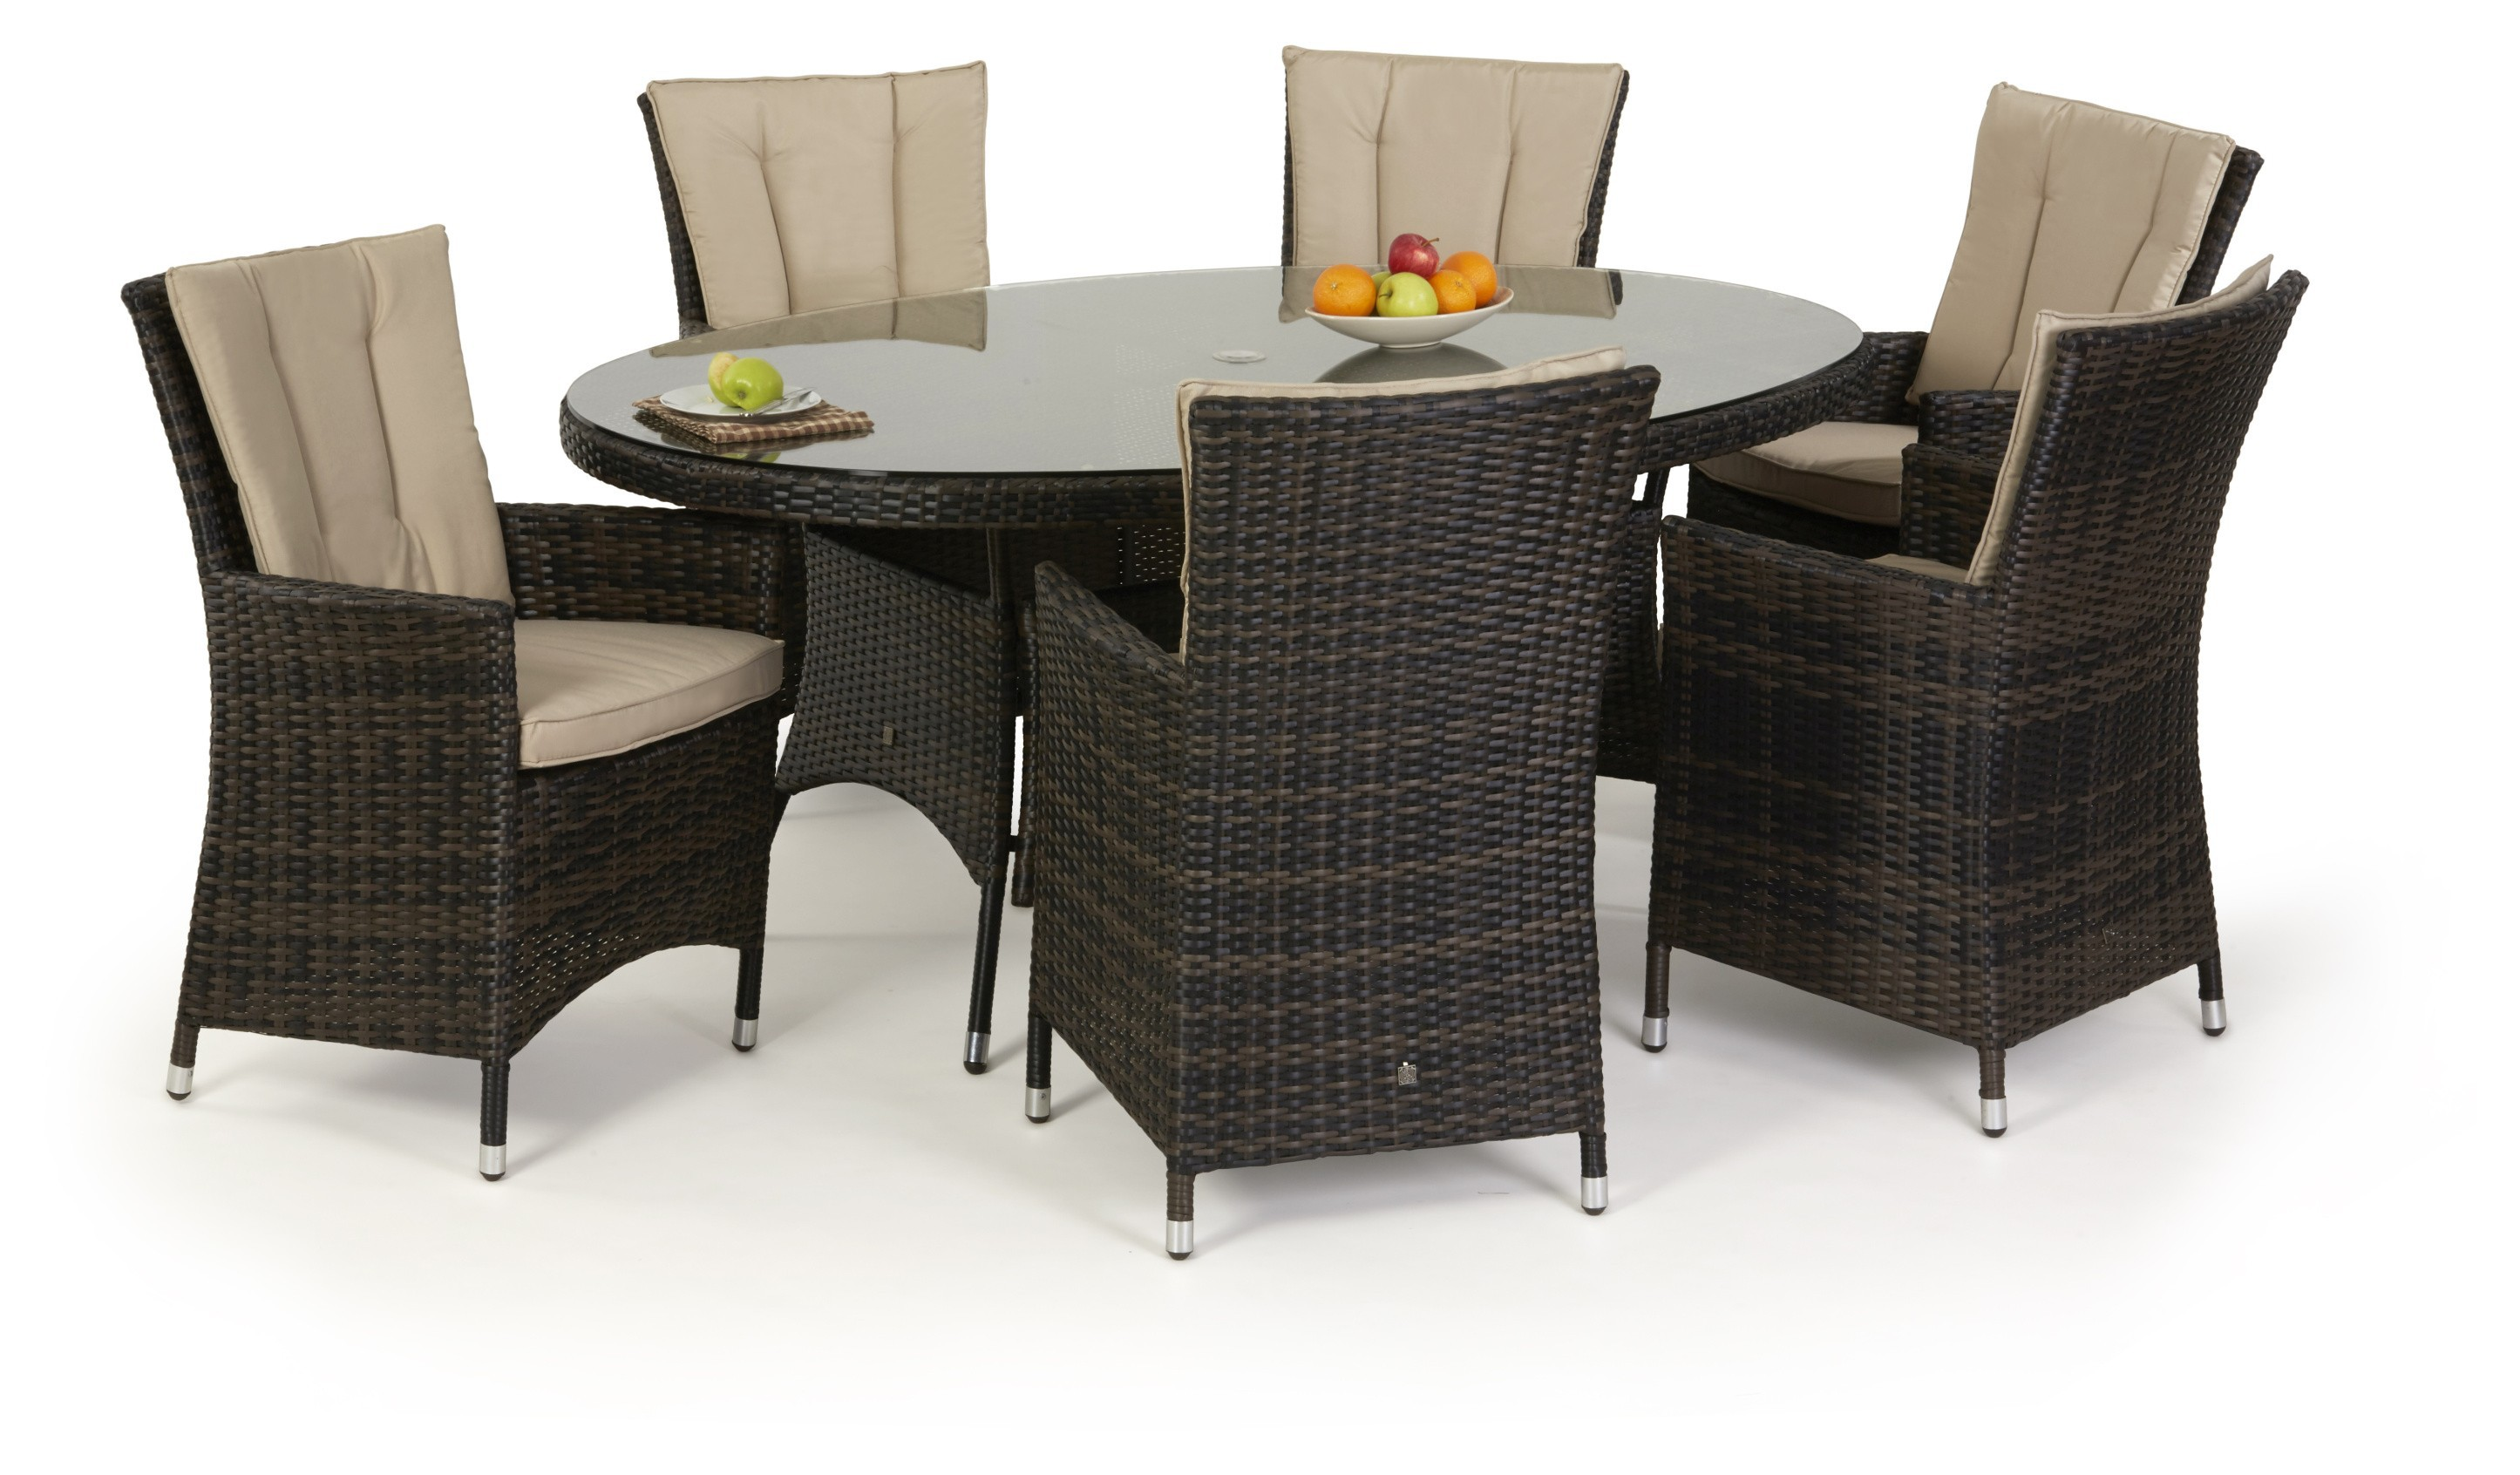 Maze Rattan La 6 Seat Oval Dining Set With Or Without Ice